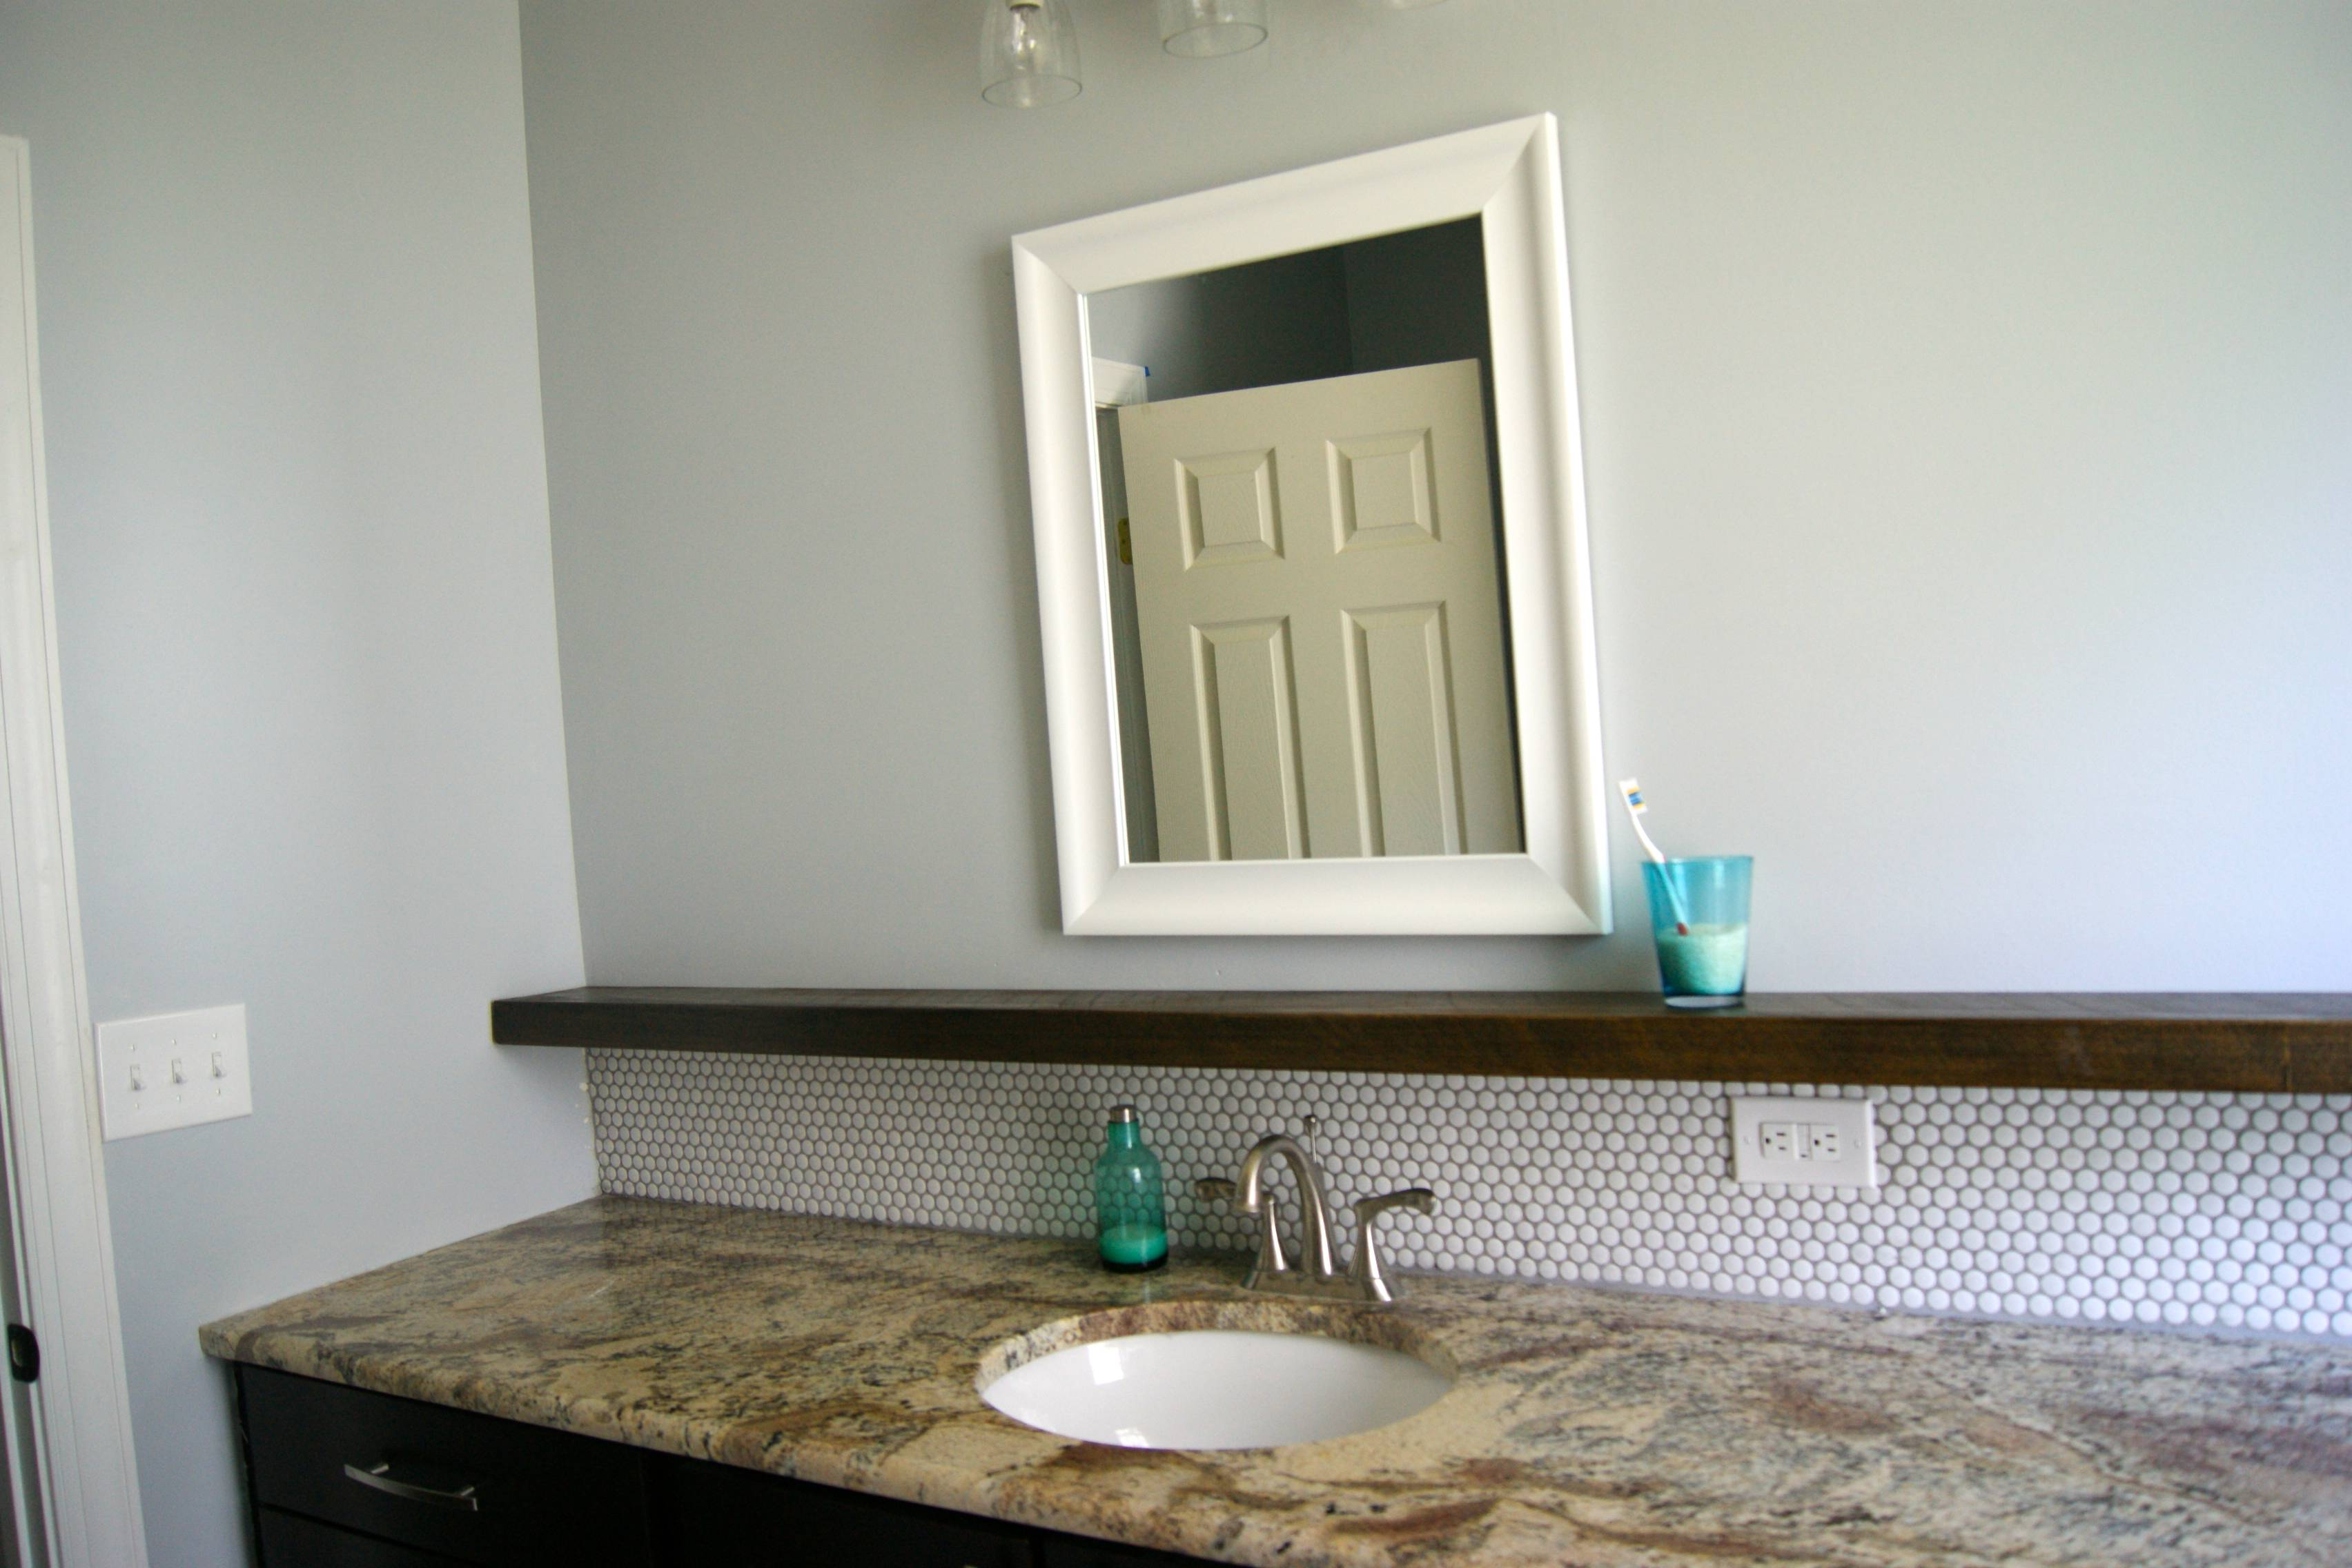 Diy bathroom tile - Bathroom Makeover With Penny Tile And Floating Wood Shelf